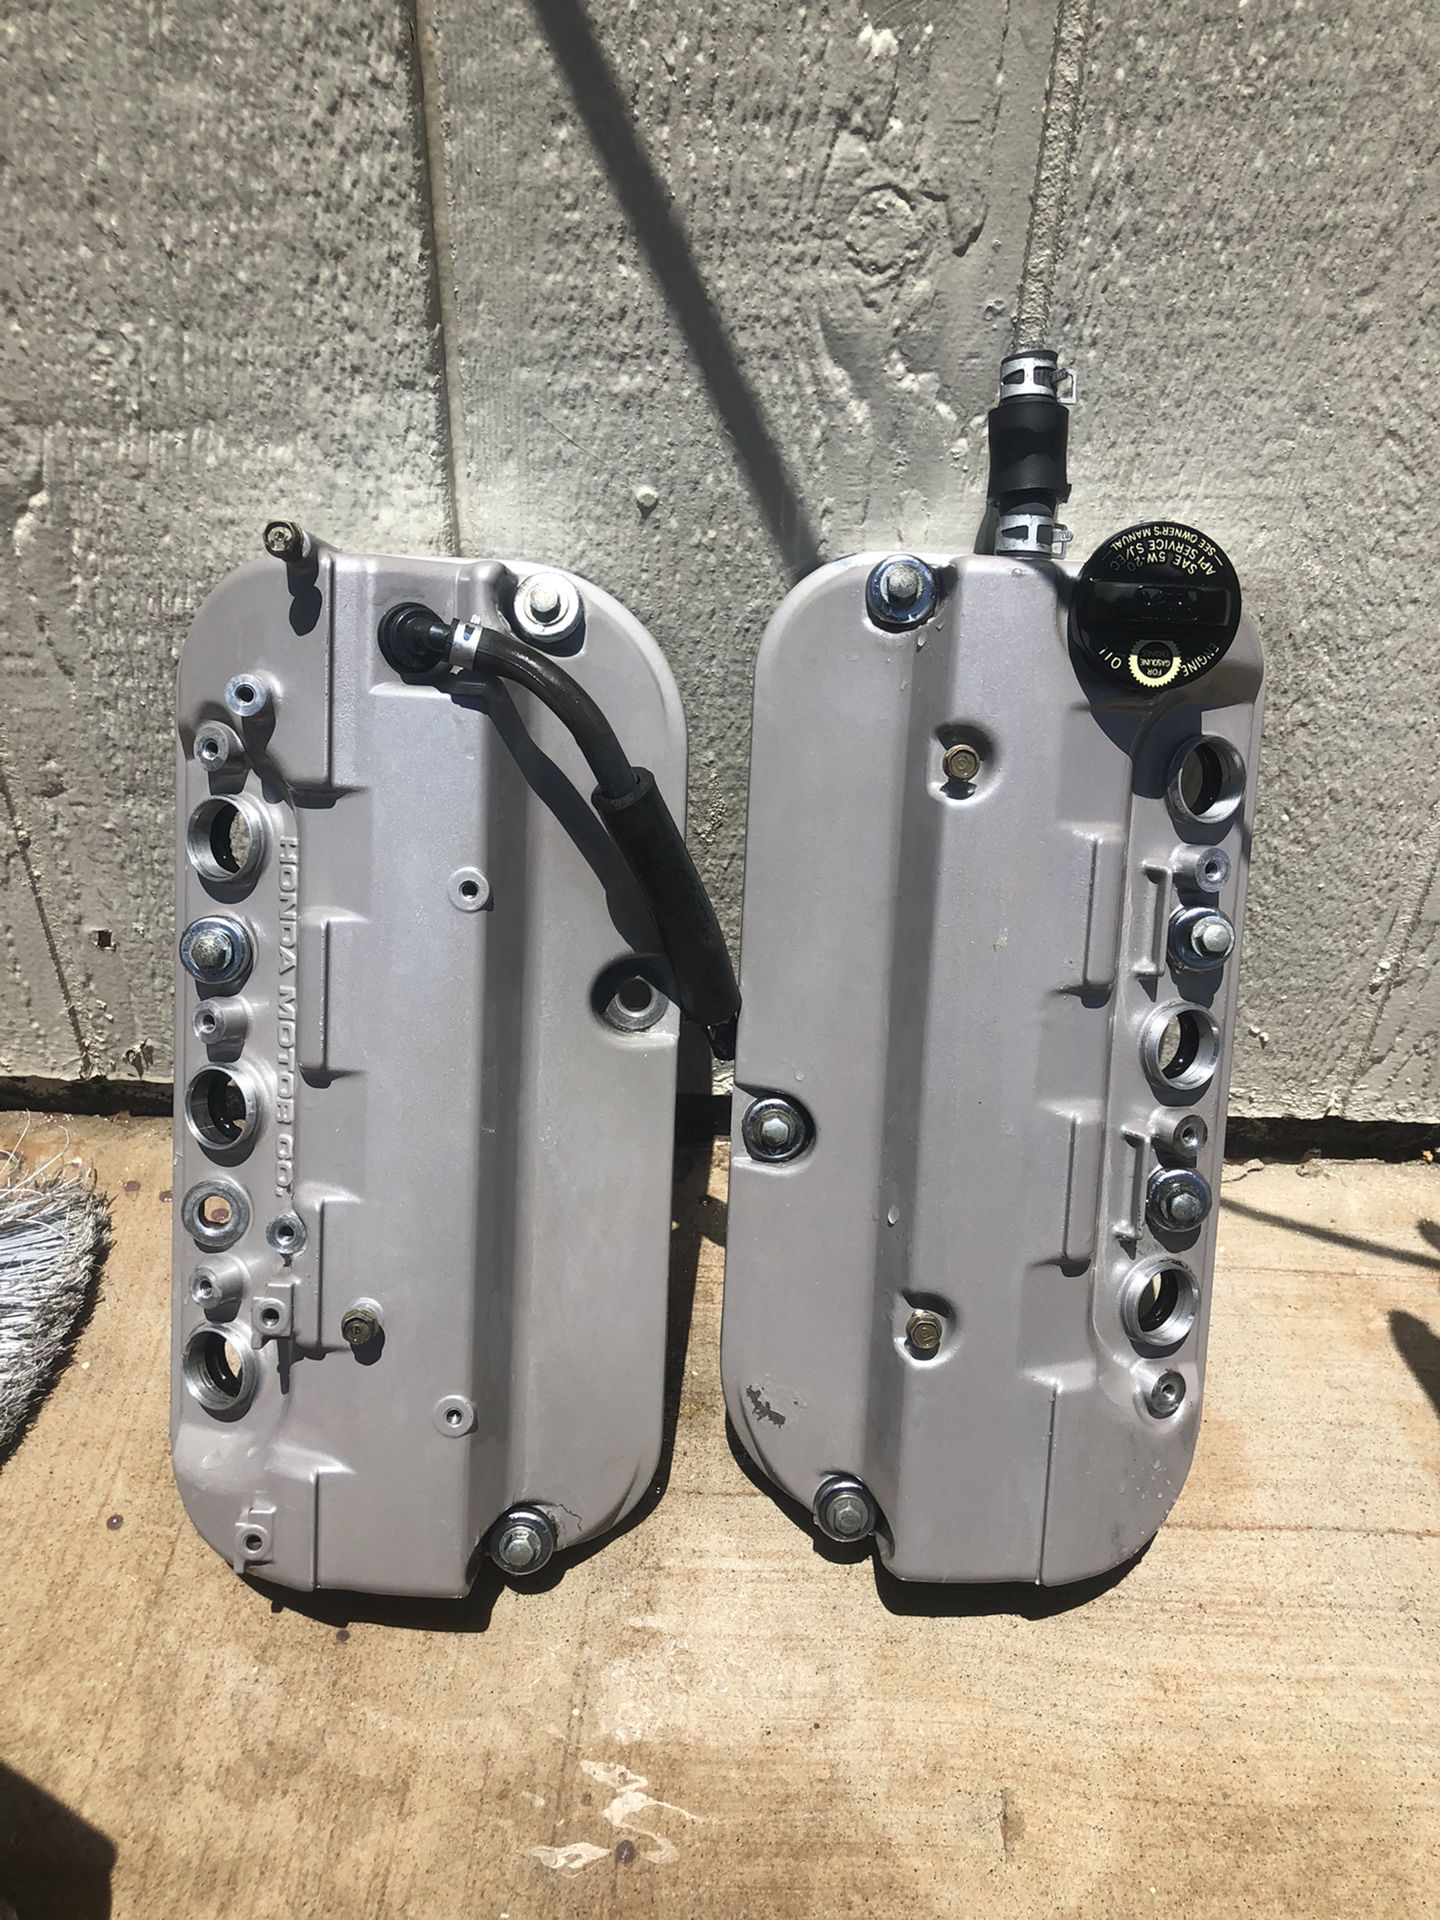 01-03 Acura 3.2 CL or TL Valve Covers